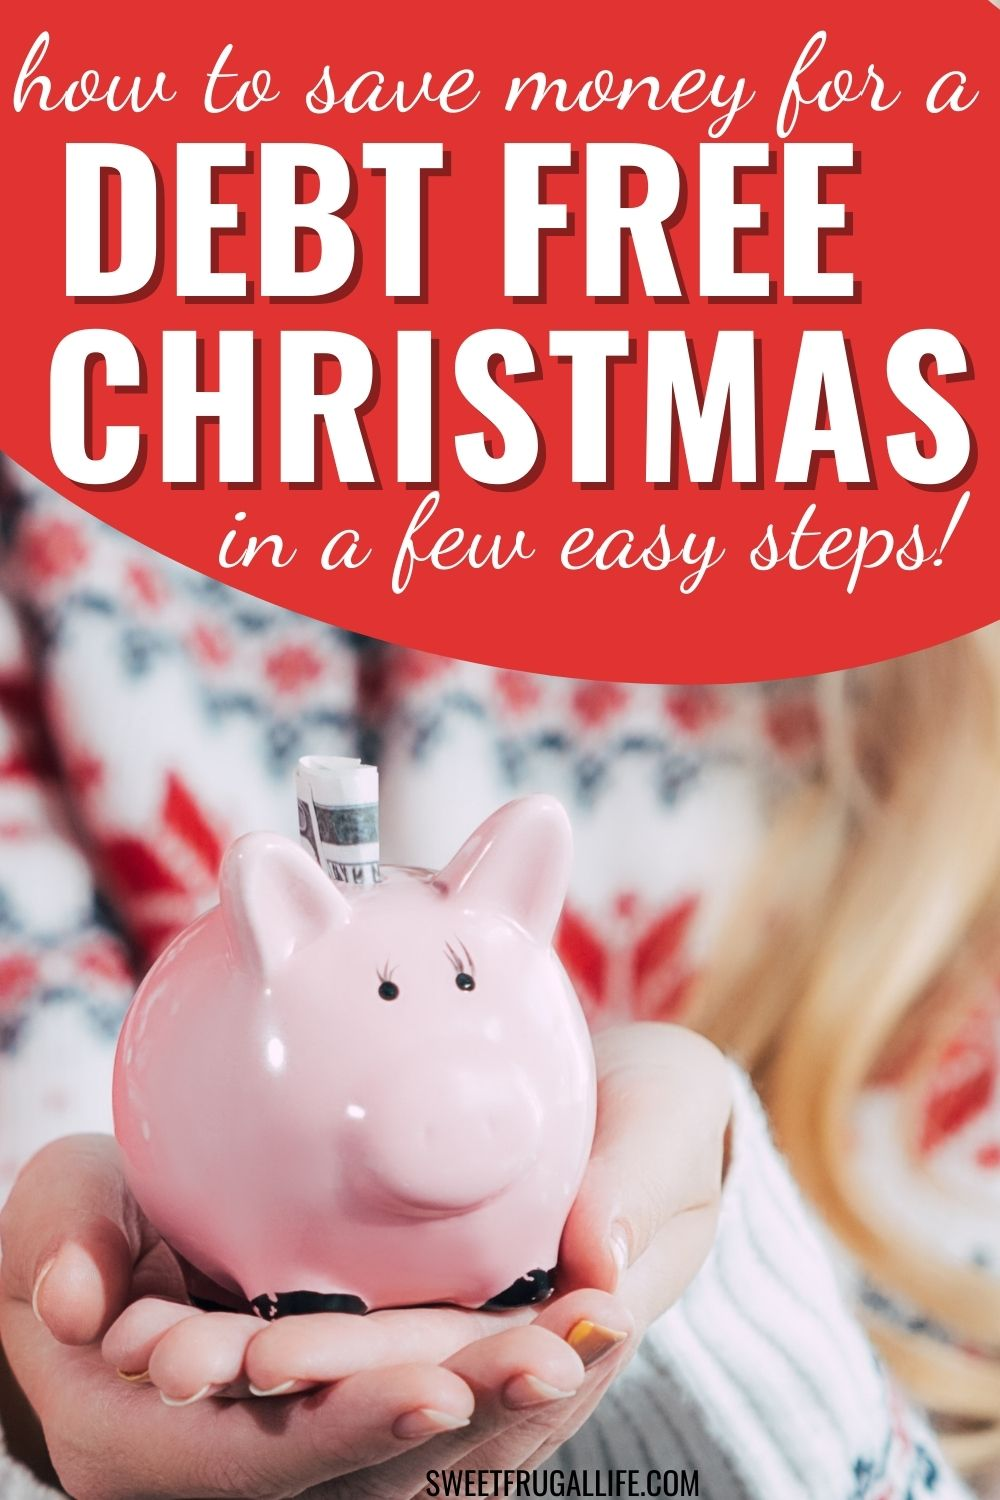 save money for christmas - debt free christmas